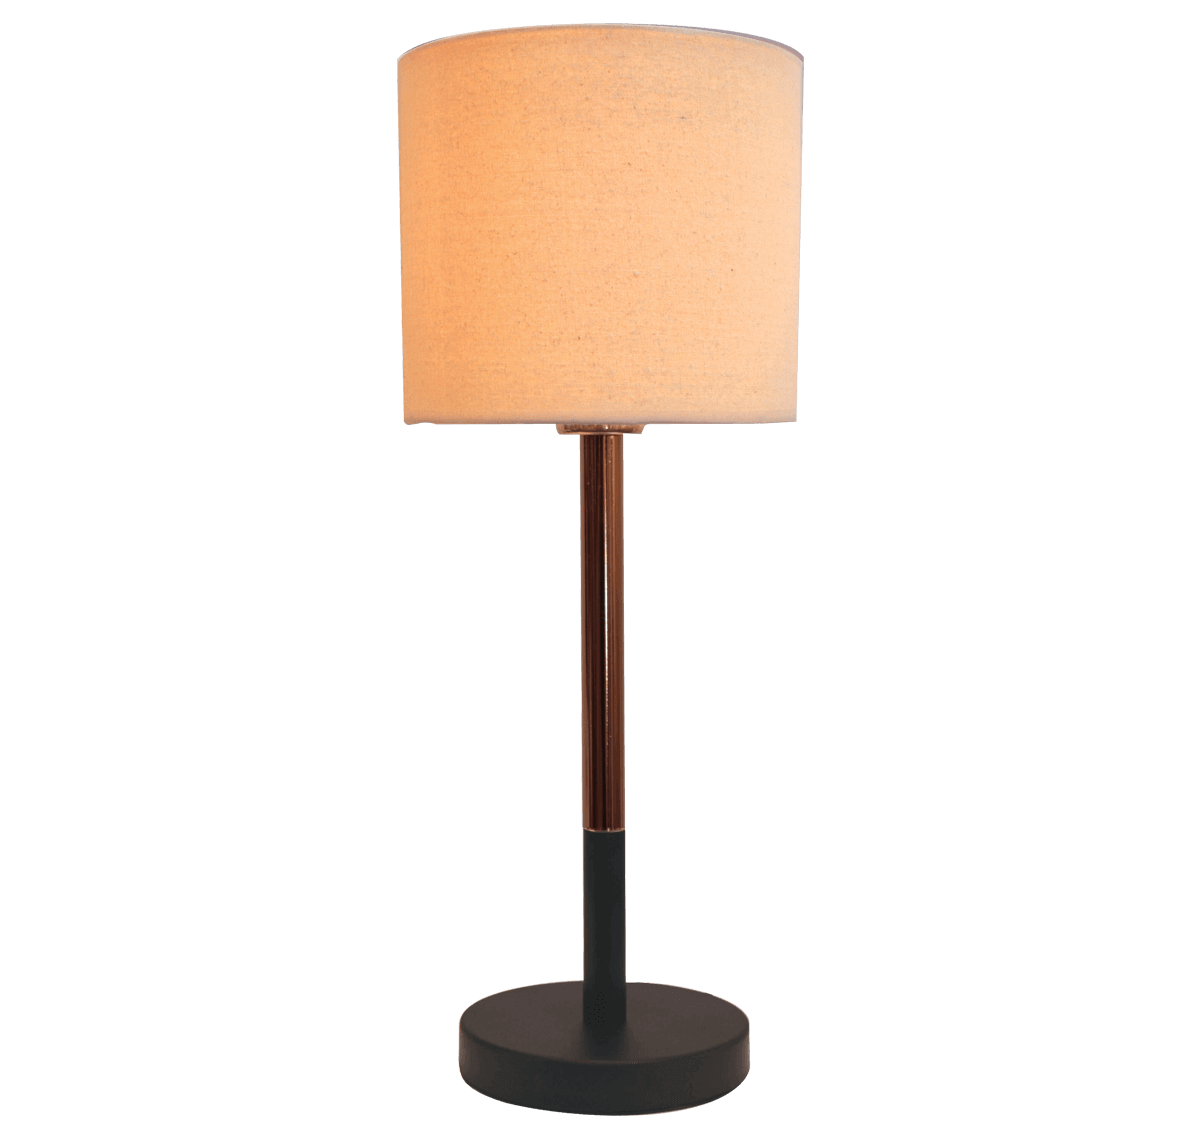 Metallo Table Lamp TC Fabric Shade Cup